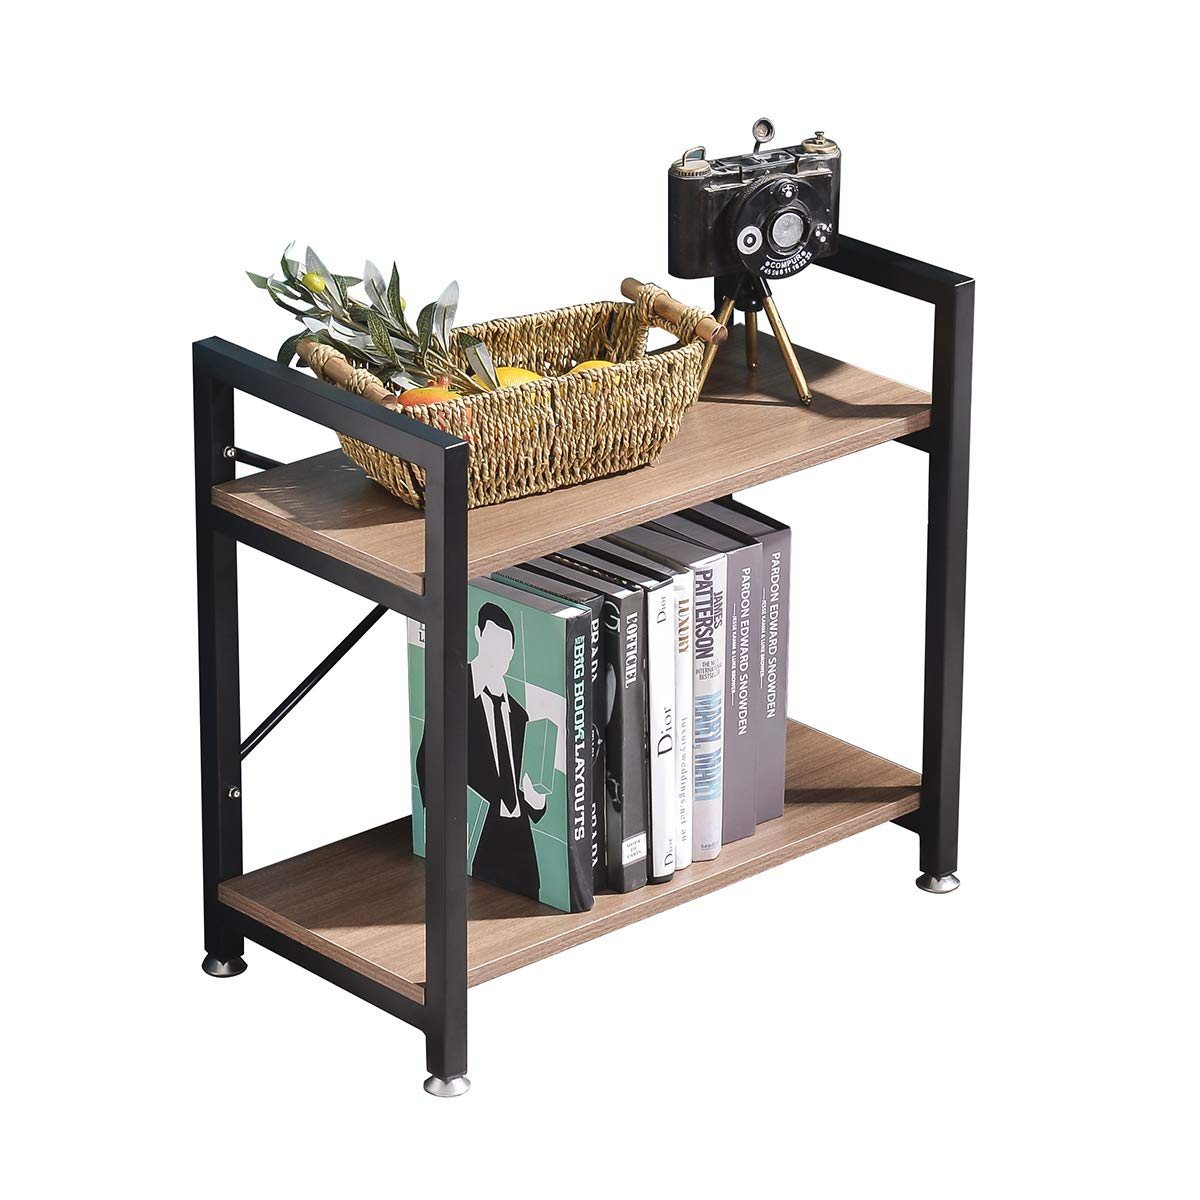 BENOSS Industrial Style Bookcases Furniture, Storage Rack Shelf for Bedroom, Living Room, Multi-Functional Shelf Units for Collection,Storage Organizer with Metal Frame (2 Tier)